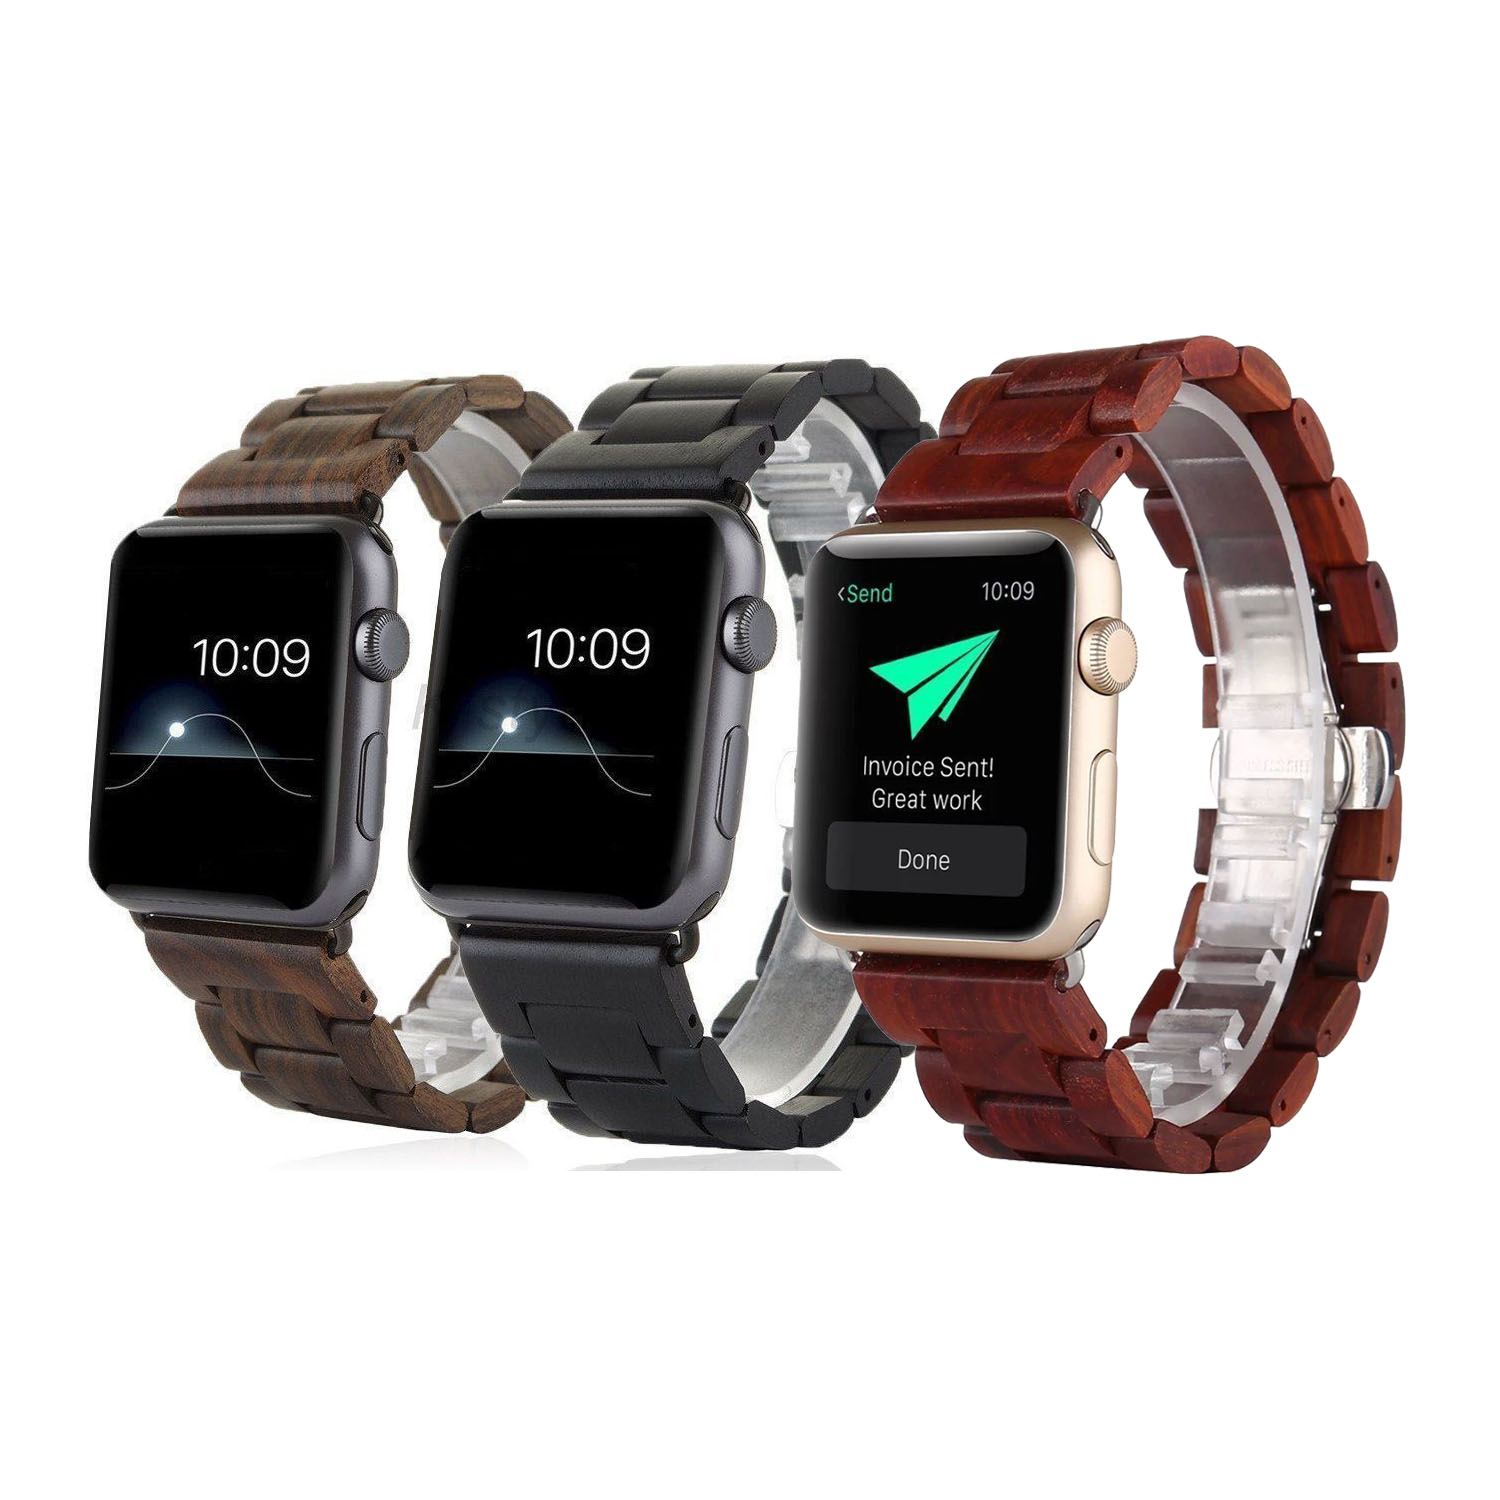 3 Colors Wooden Wrist Strap for Apple Watch Series 2 Band Bracelet for iWatch 1 2 38mm 42mm Butterfly Buckle Wood Wristband luxury ladies watch strap for apple watch series 1 2 3 wrist band hand made by crystal bracelet for apple watch series iwatch